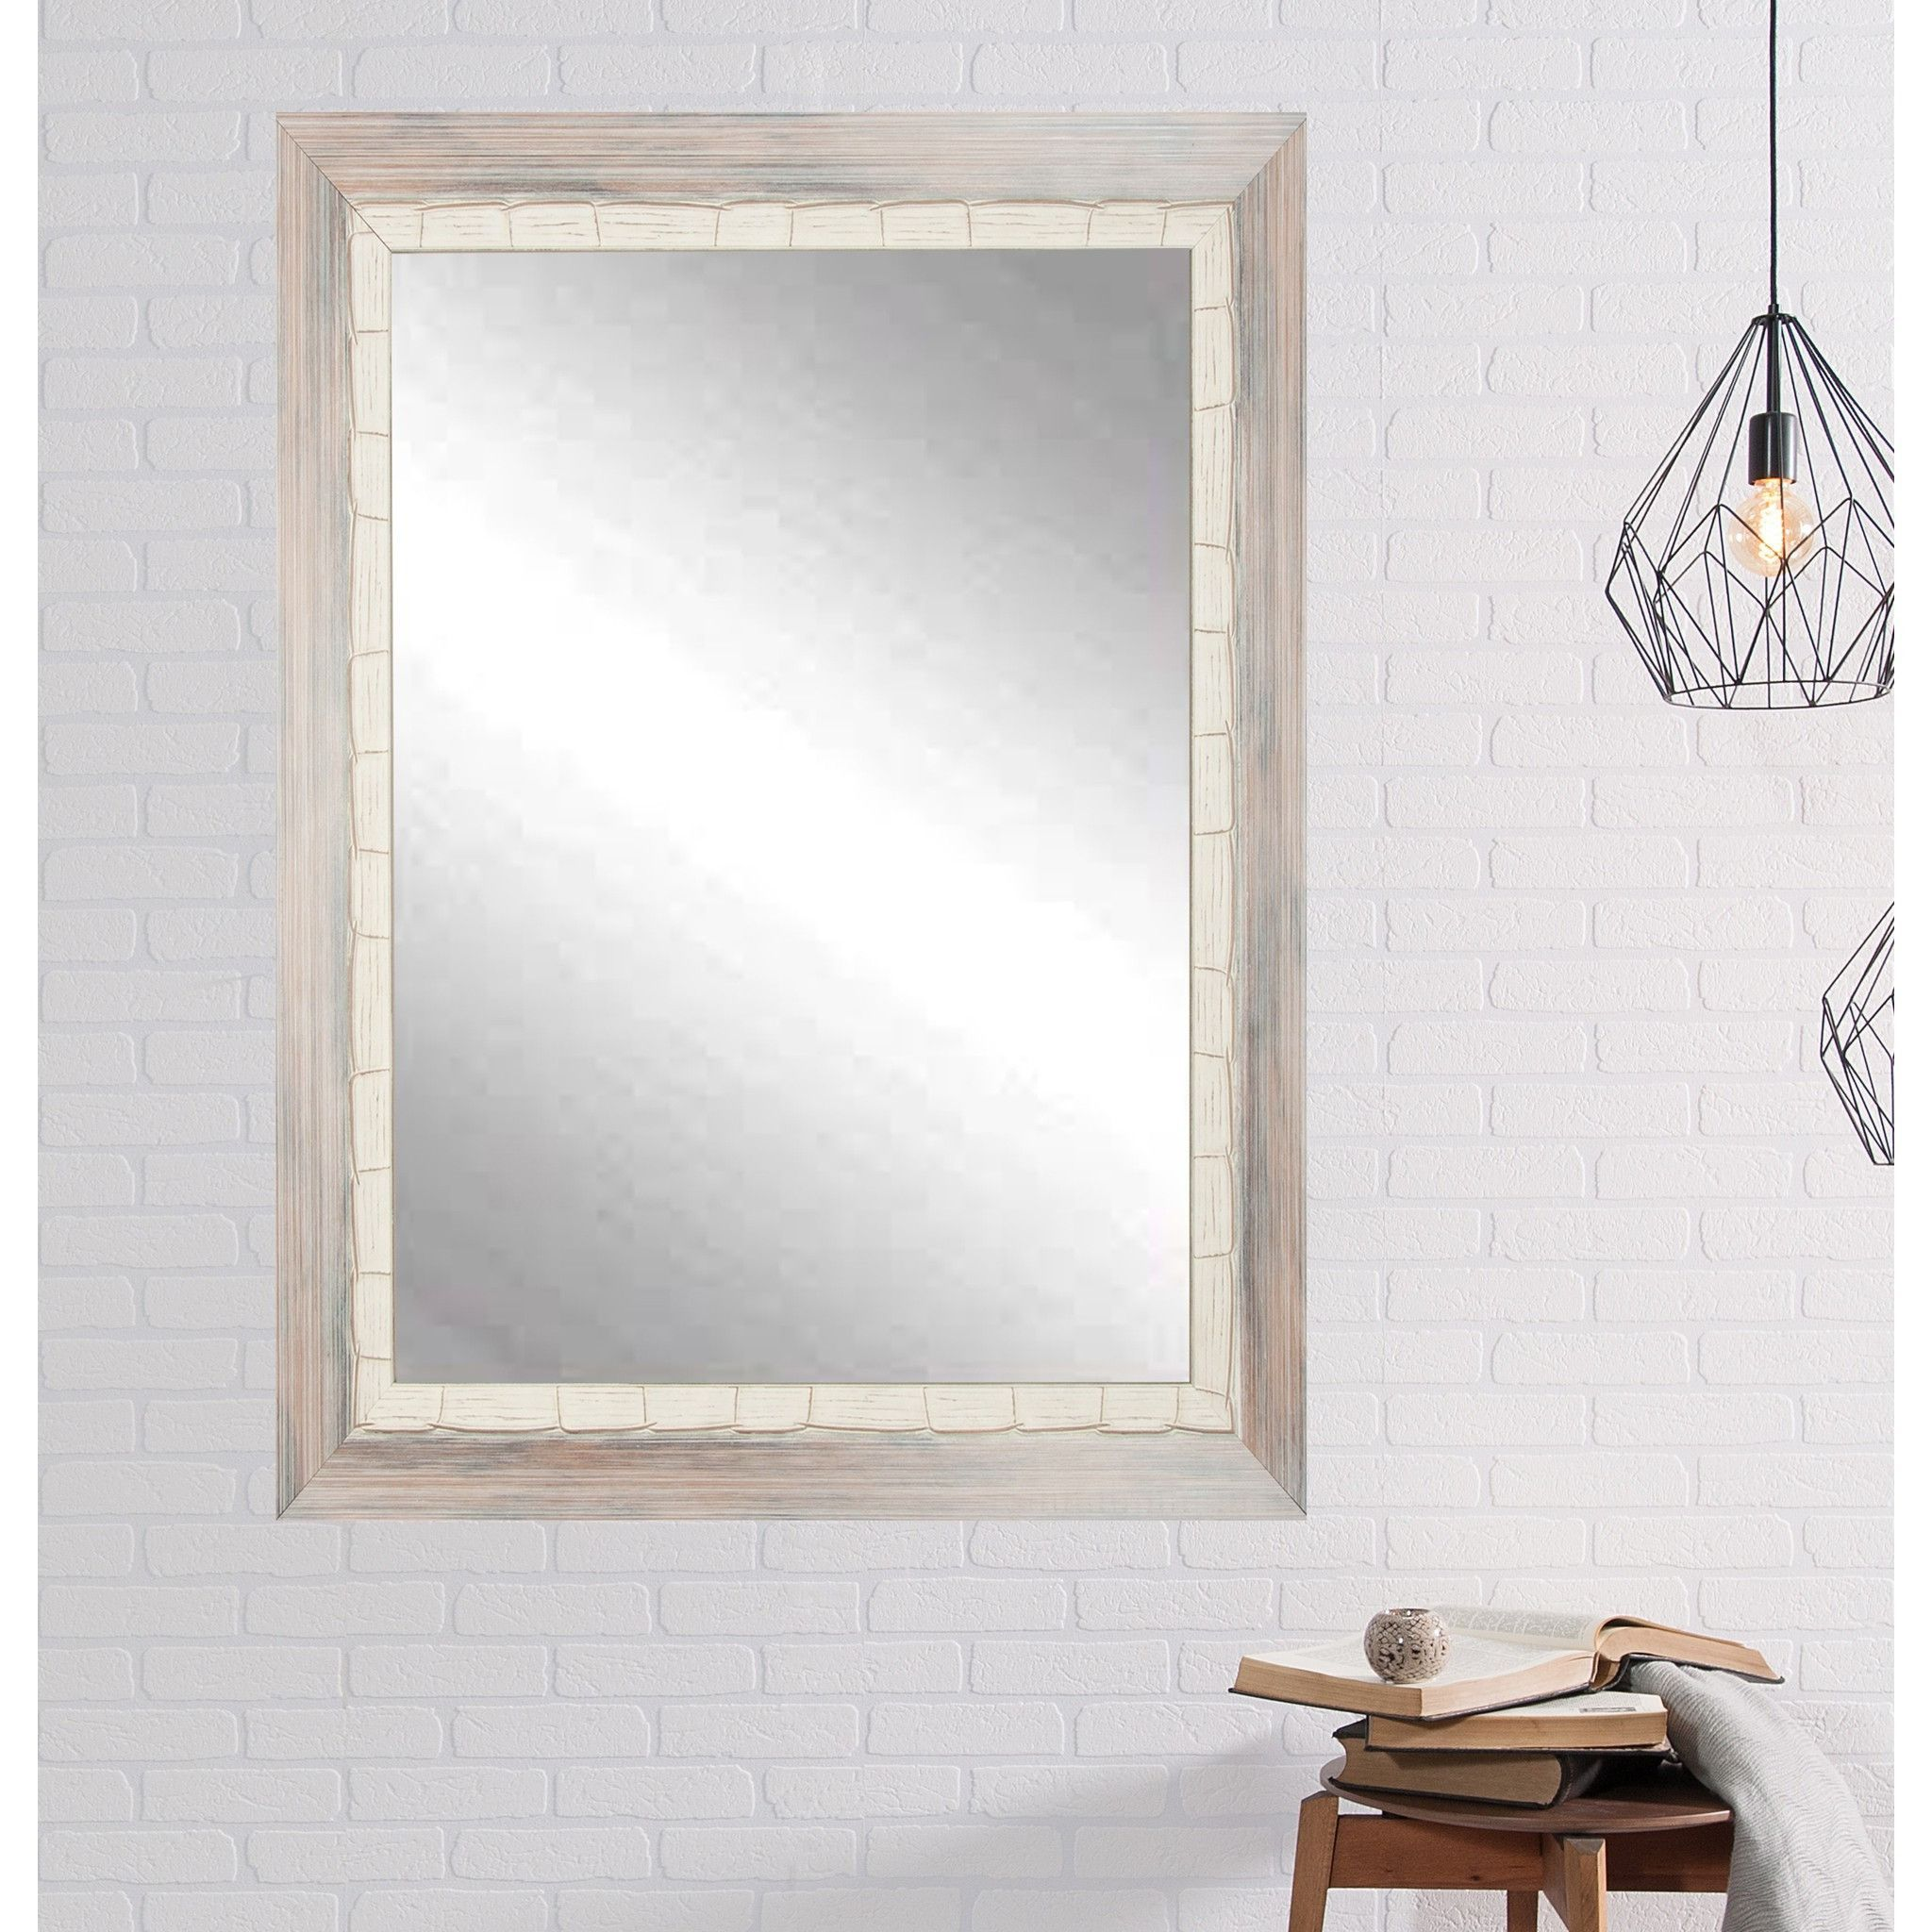 Beachy wall mirrors gallery home wall decoration ideas brandt works weathered beach wall mirror bm023m3 32x41 brandt works weathered beach wall mirror bm023m3 amipublicfo amipublicfo Choice Image